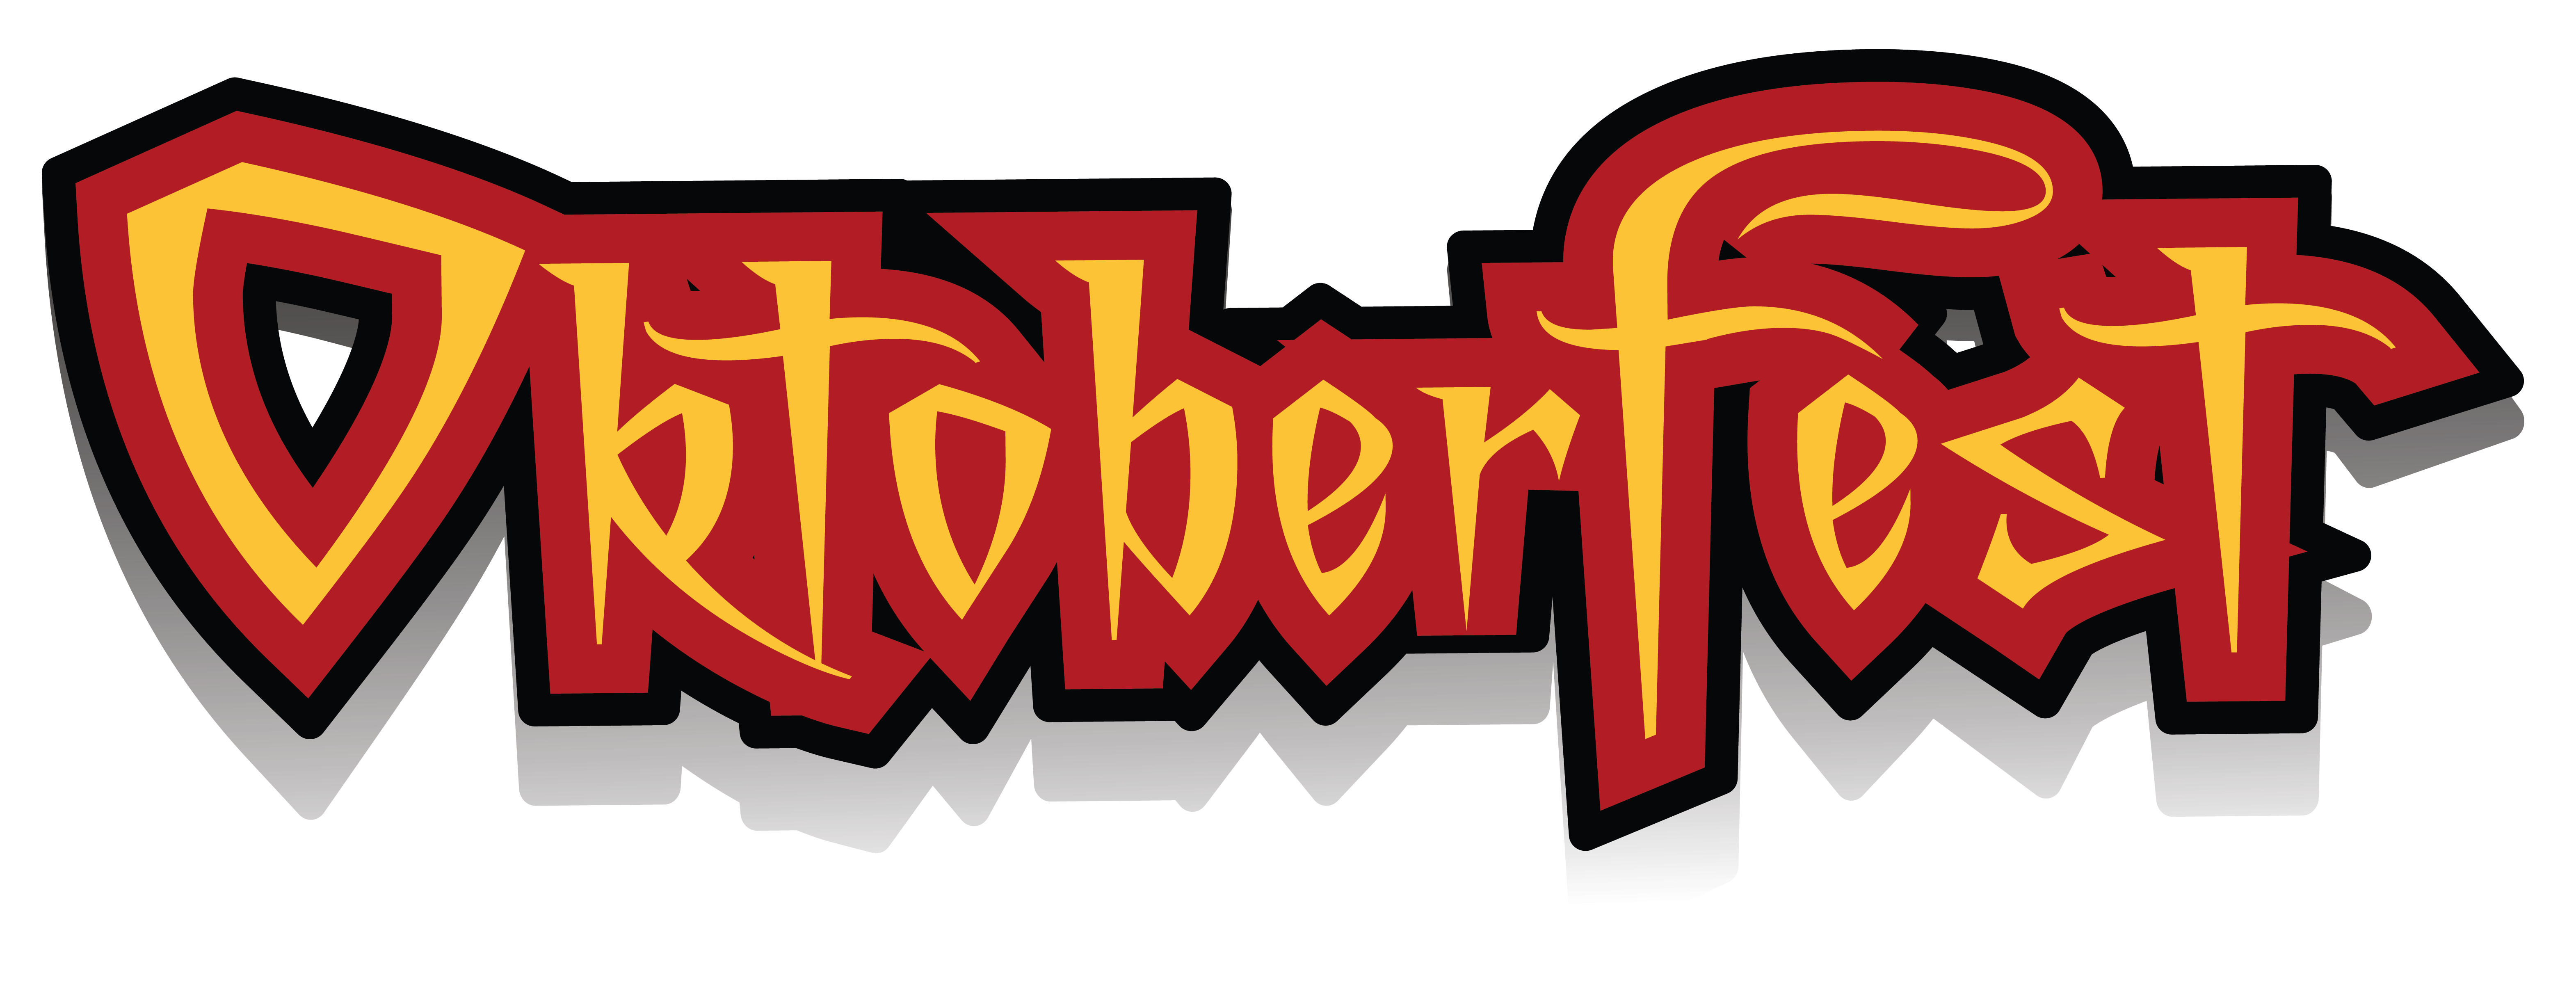 Oktoberfest clipart transparent. Red png picture gallery